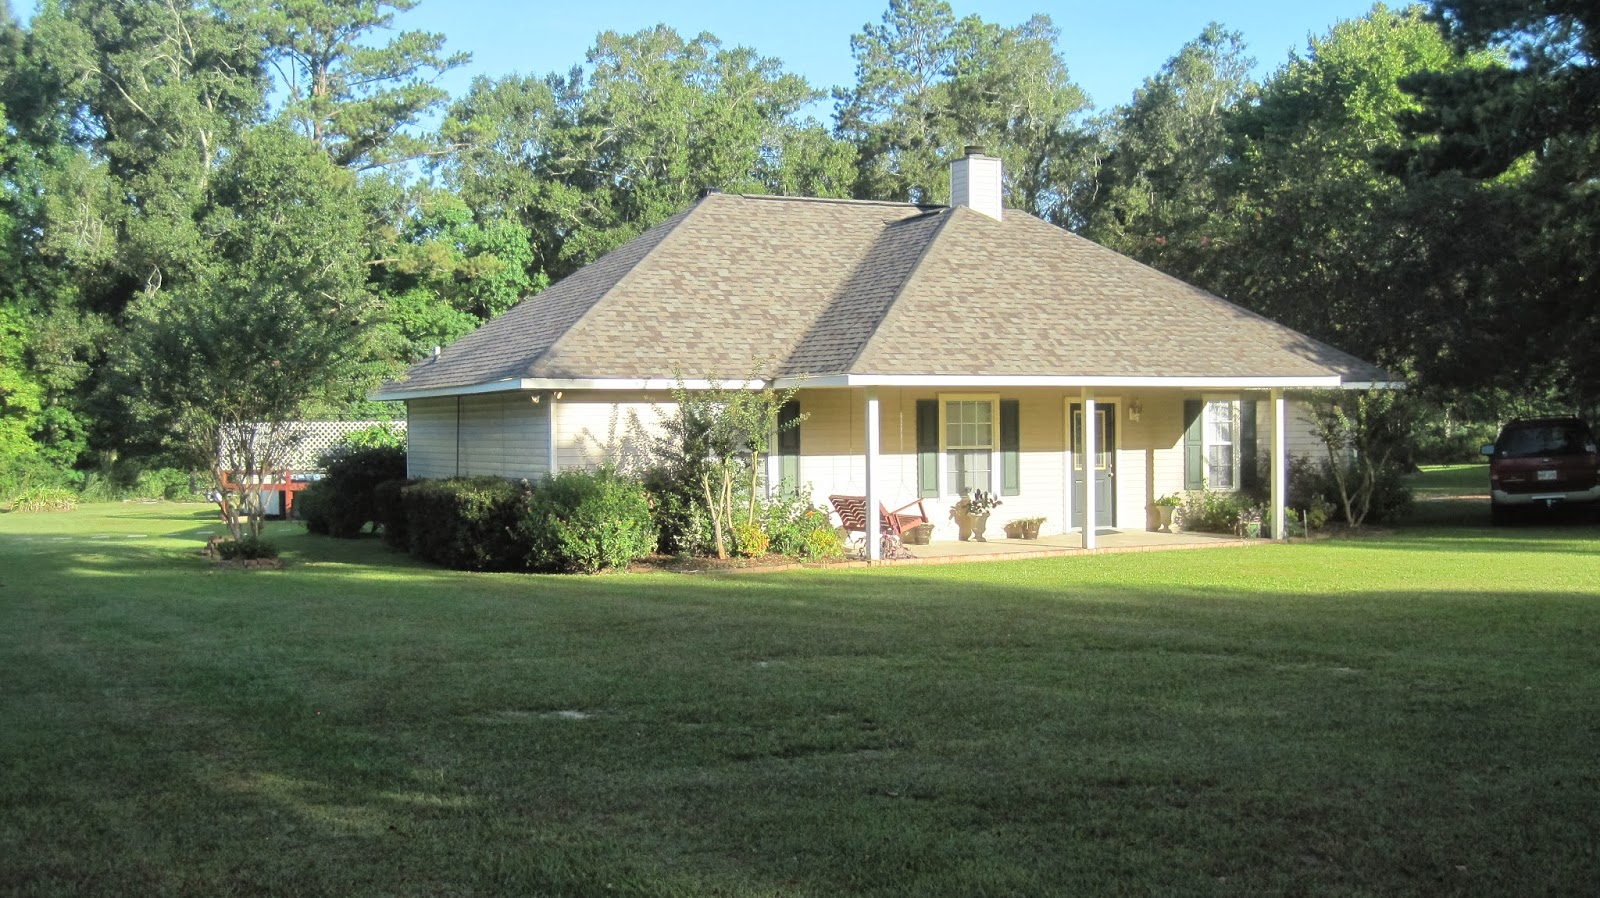 Location location location ponchatoula schools flood zone for Houses with mother in law suites for sale near me